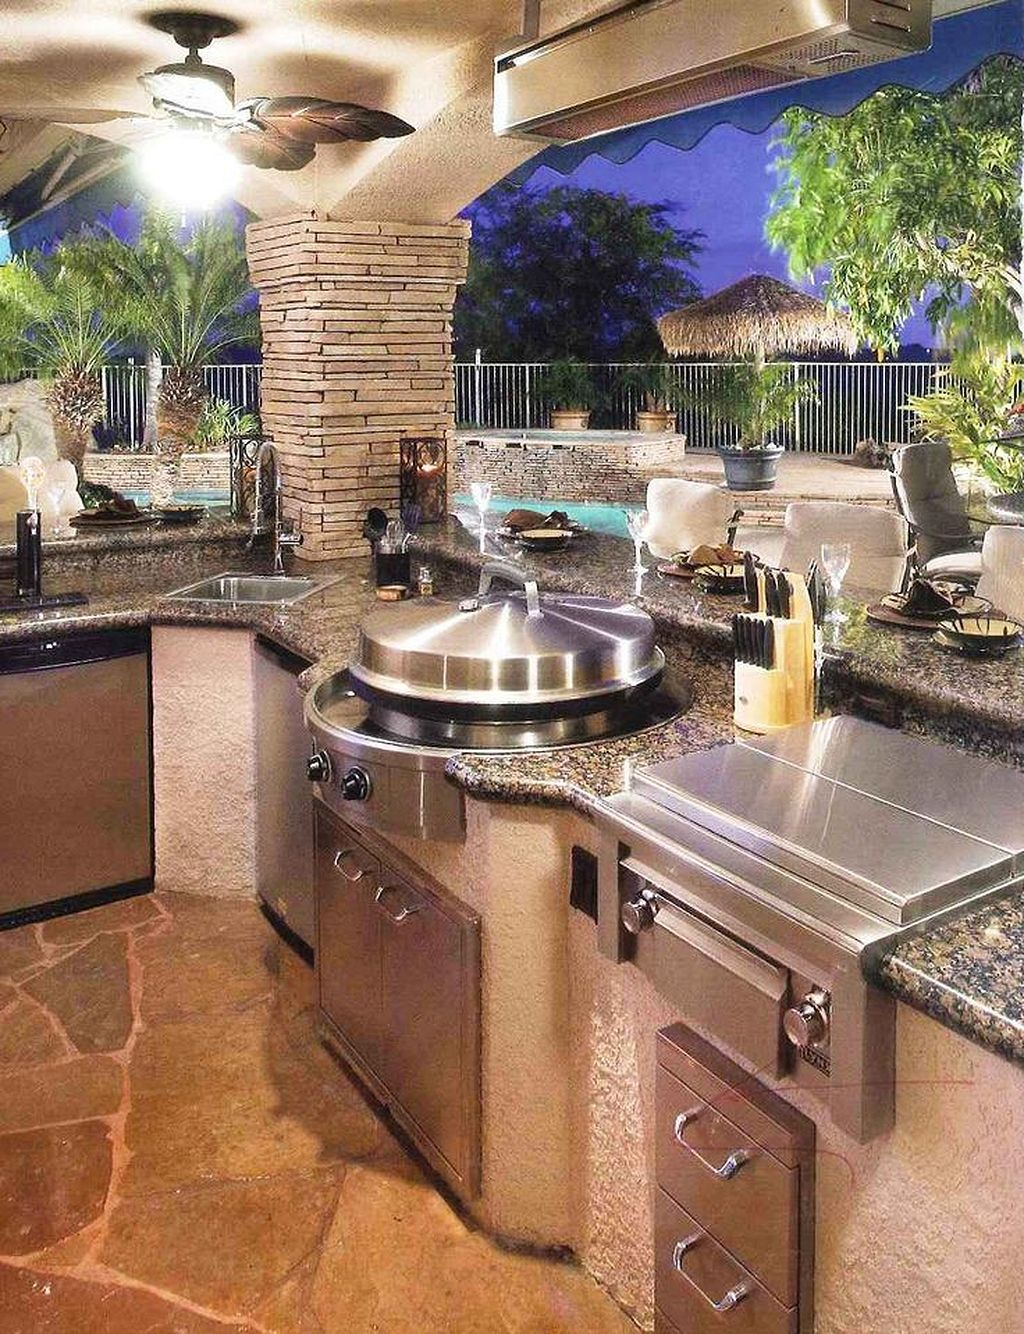 Outdoor Kitchen Ideas And Designs on outdoor entertainment designs and ideas, kitchen plans and ideas, kitchen backsplash designs and ideas, summer kitchen designs and ideas, kitchen cabinets and ideas,